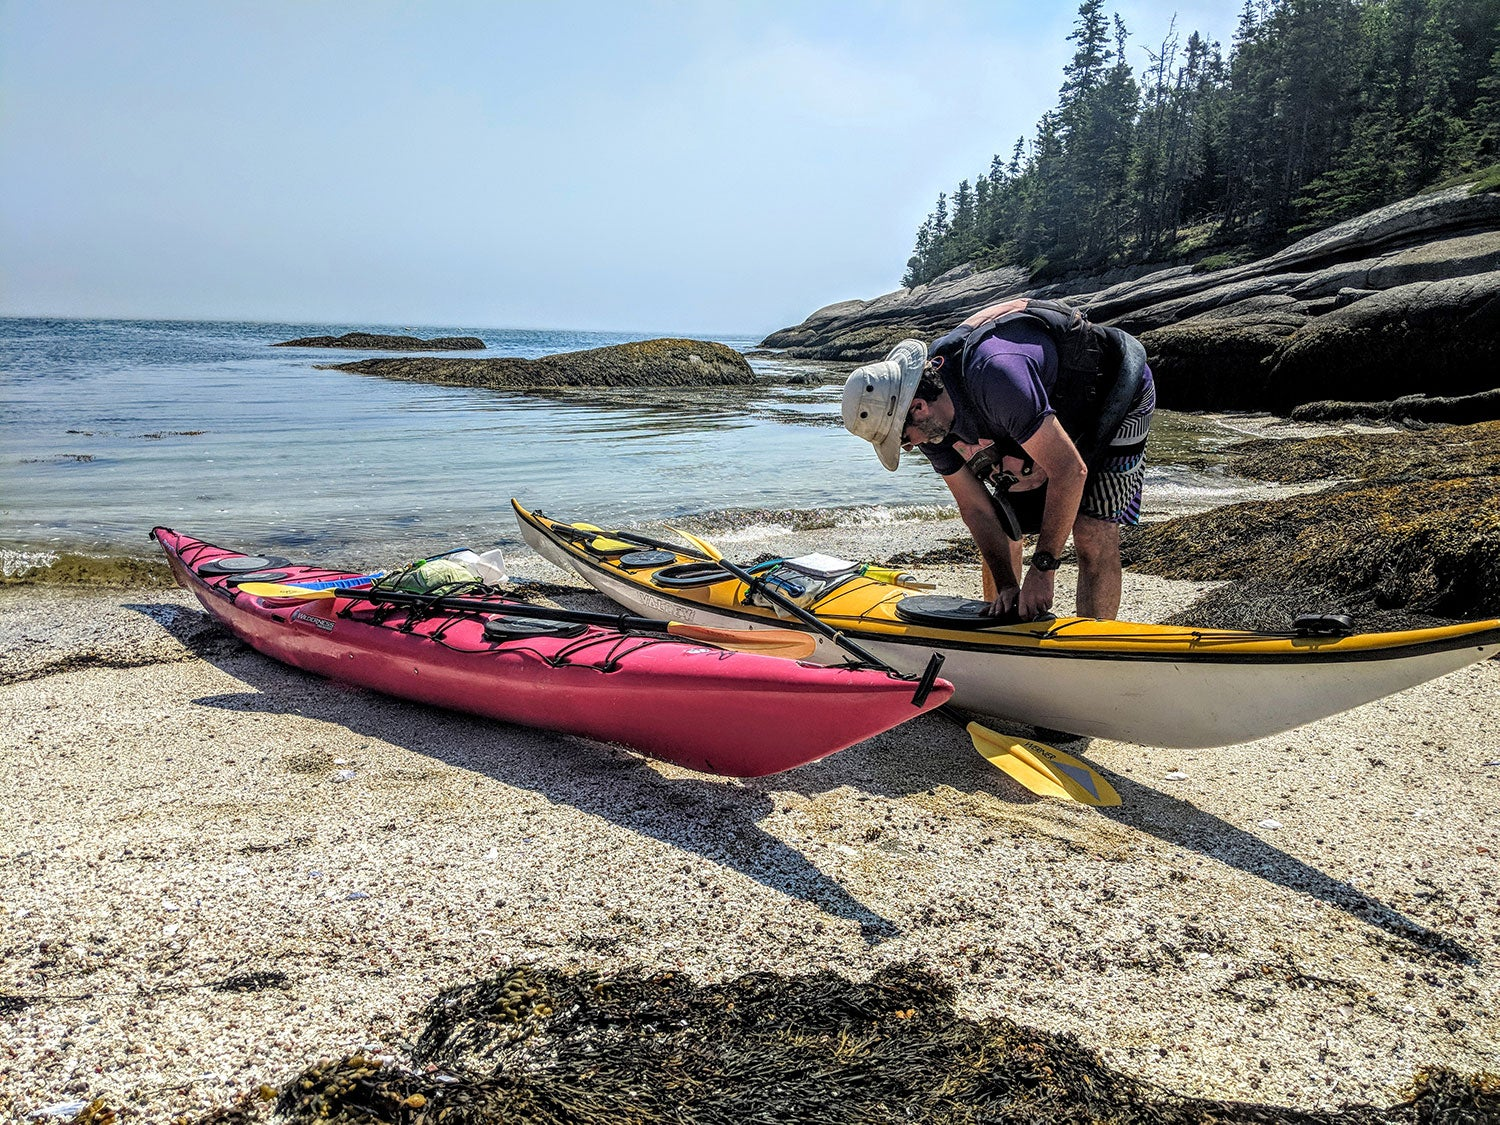 hutch preparing his sea kayak